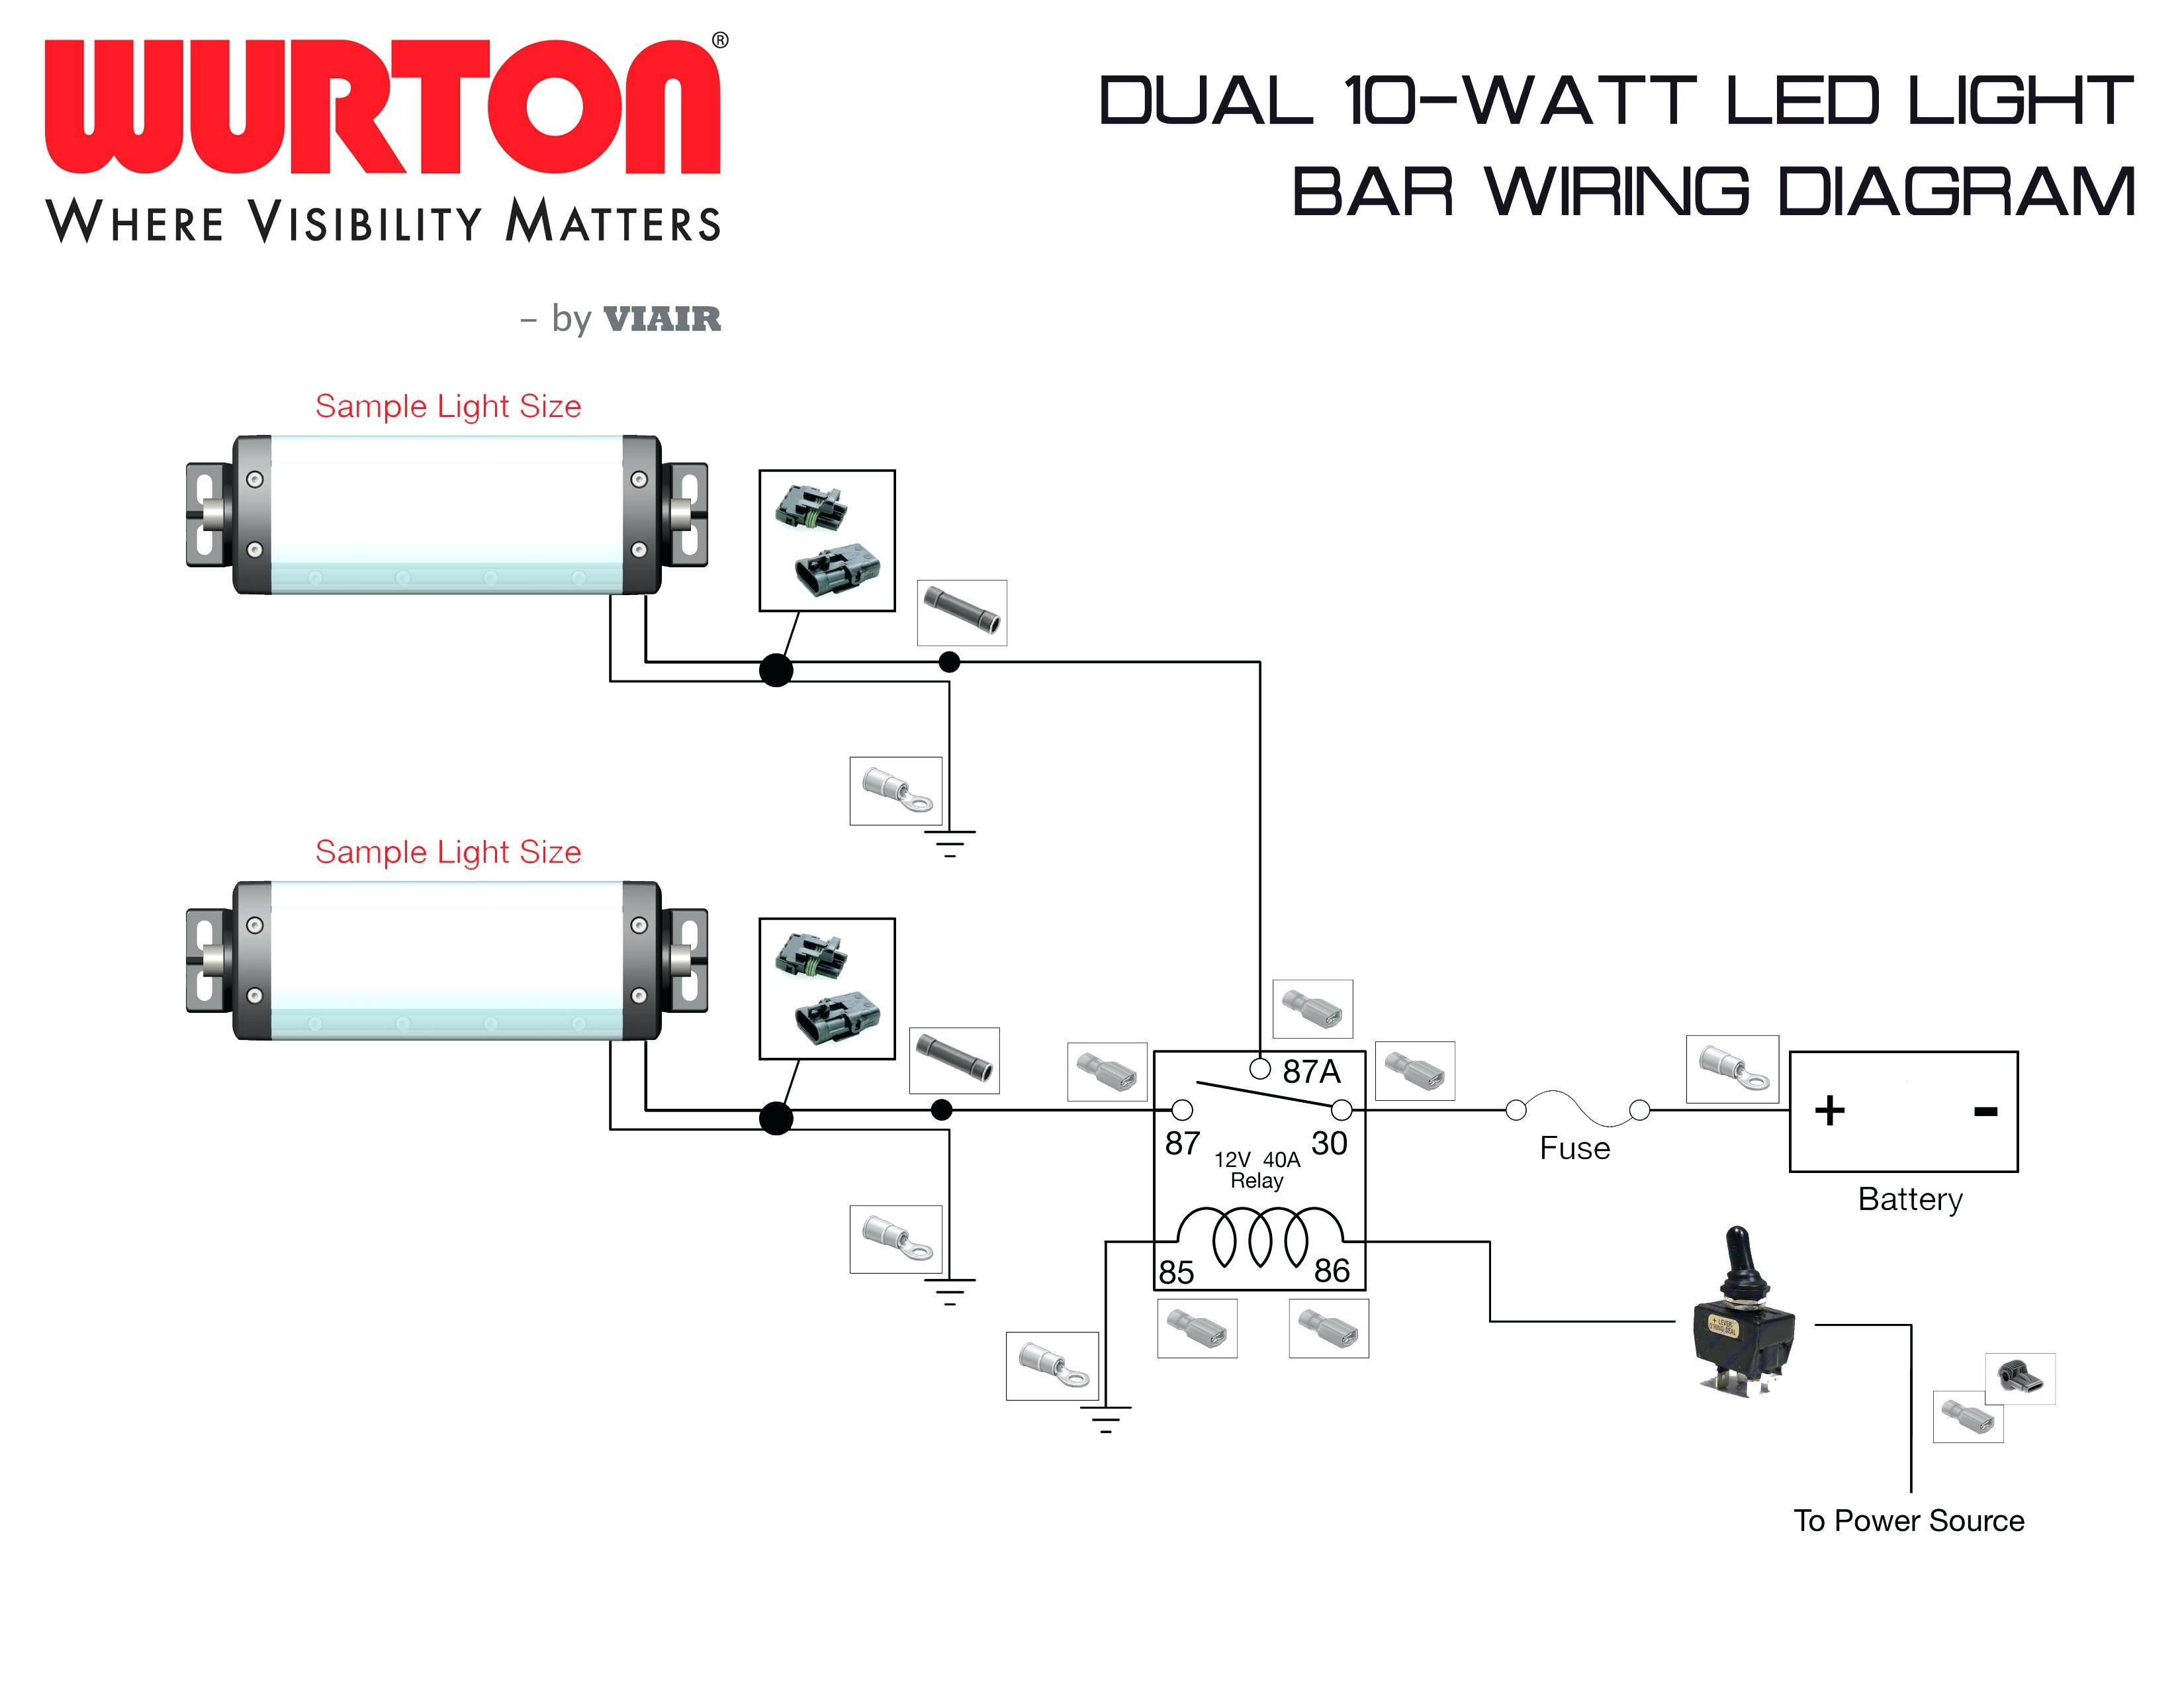 12v led lights wiring diagram for a hotpoint tumble dryer door light bar relay image